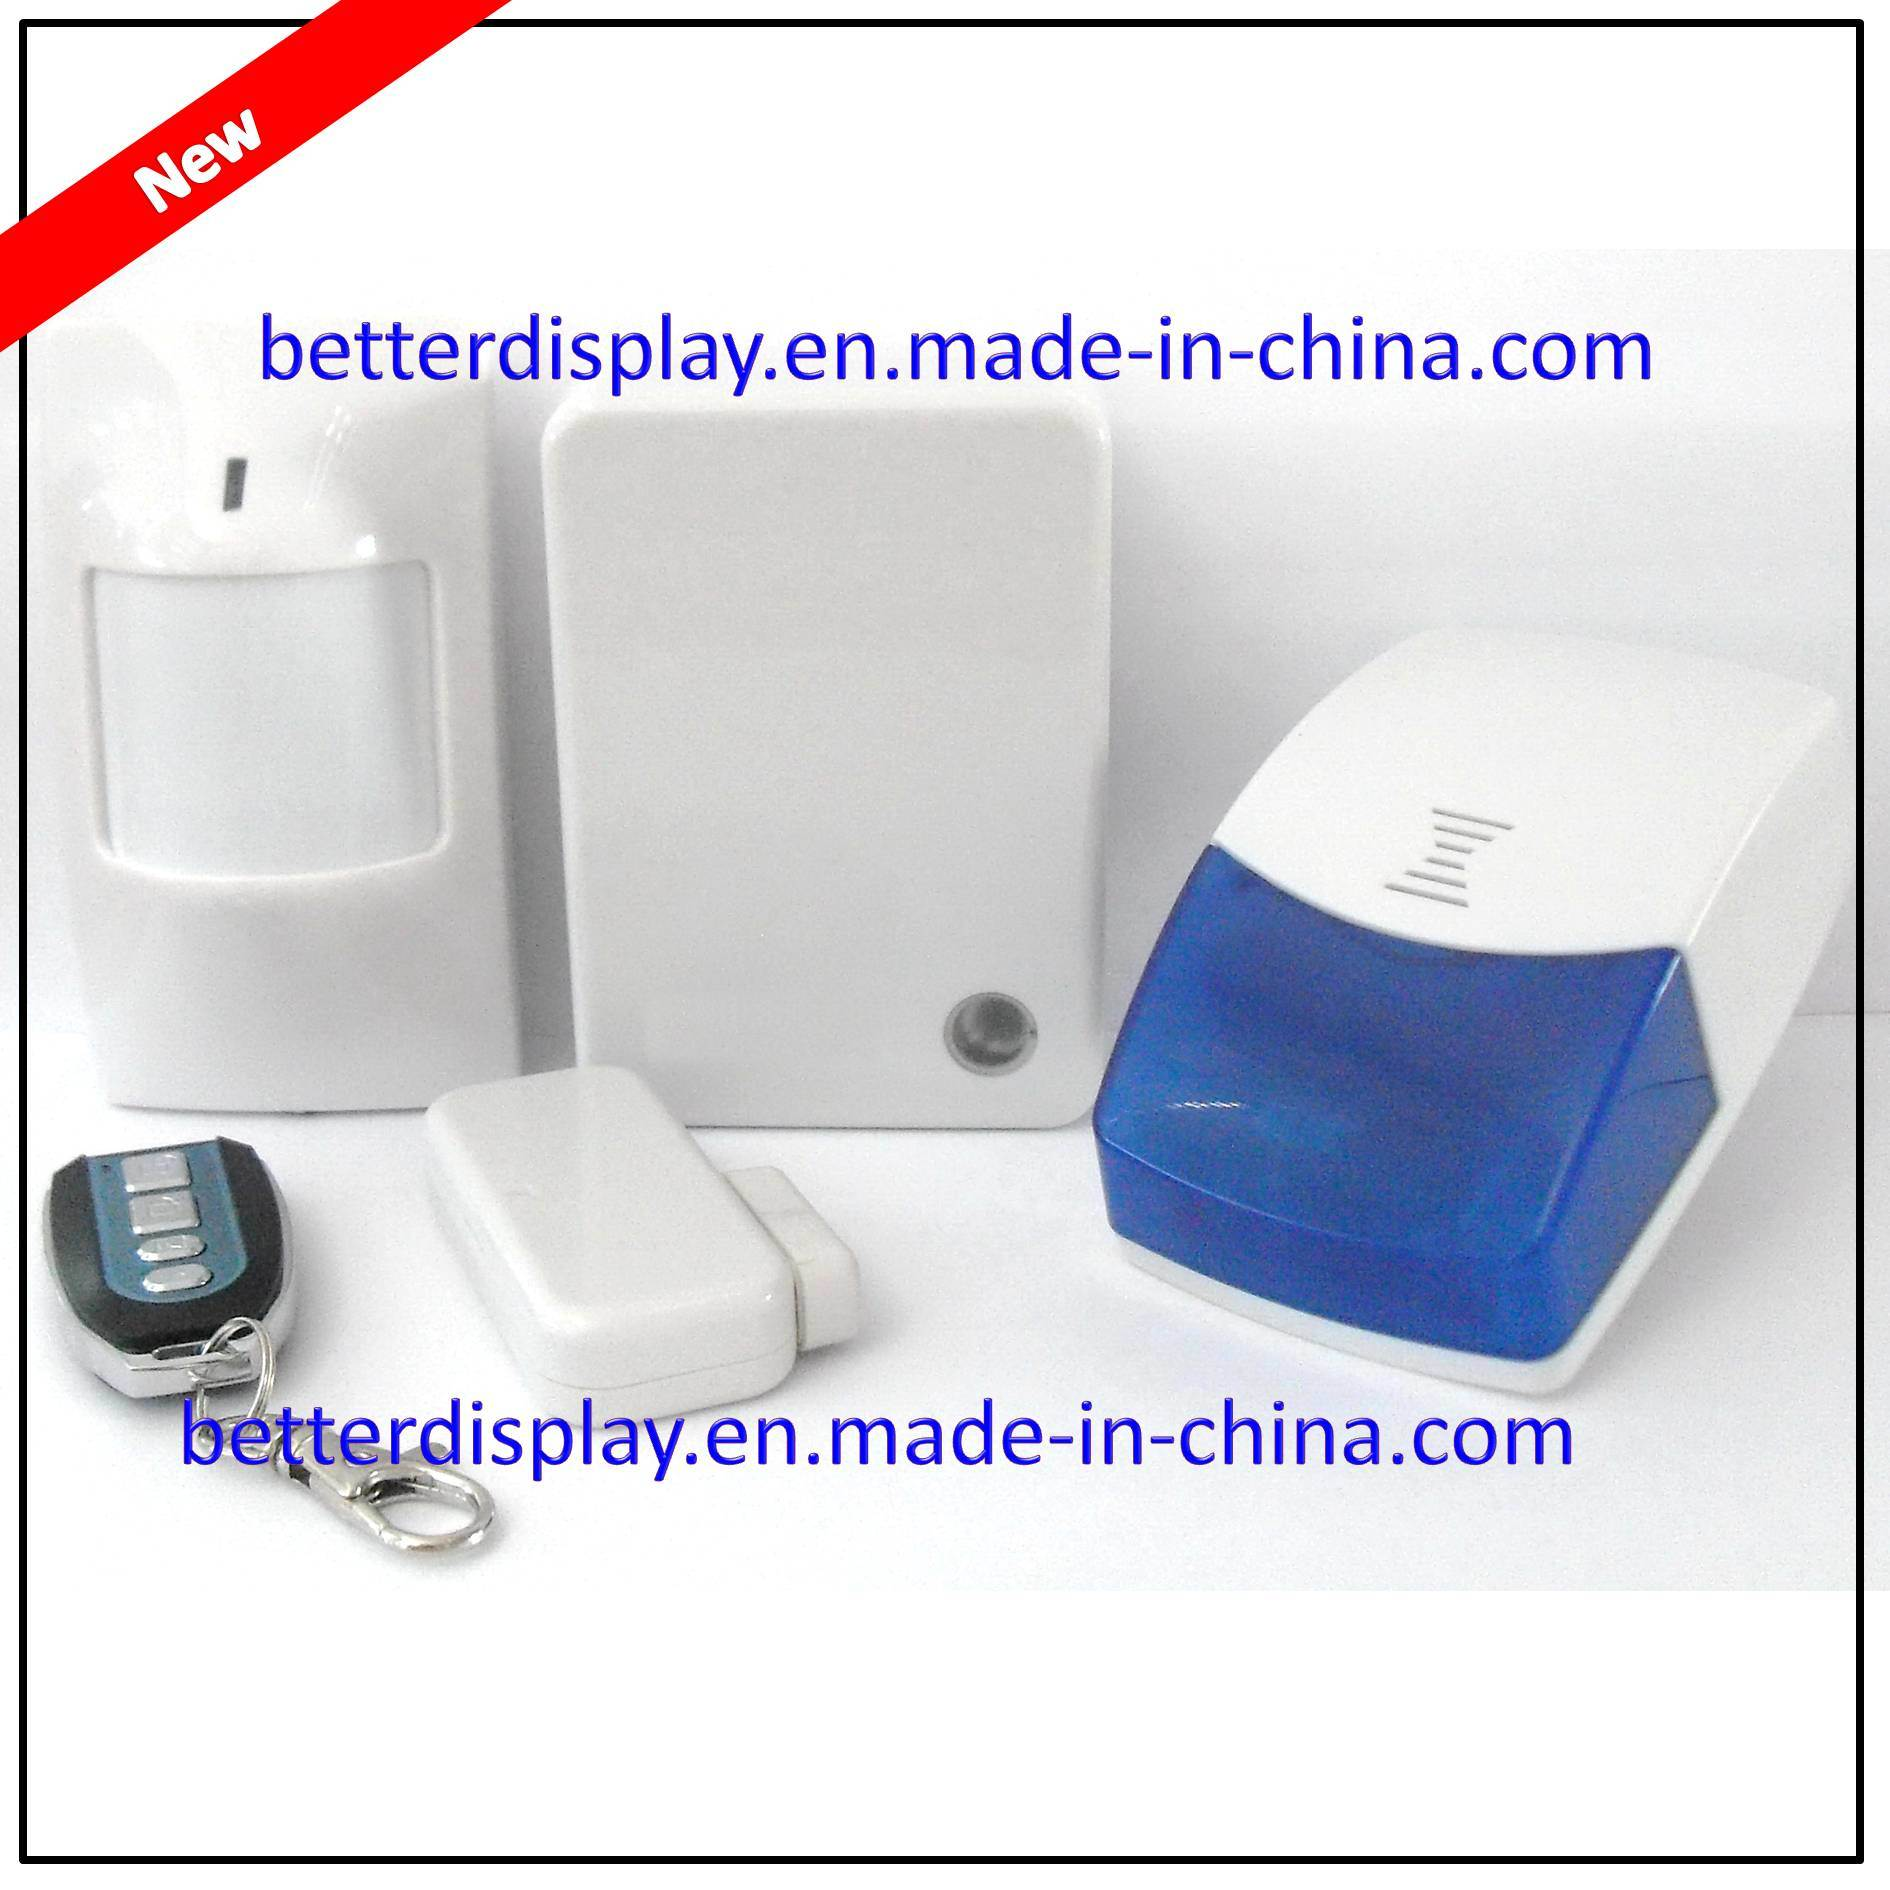 Fashionably Designed & Complete Function Finseen Cloud Based IP Alarm